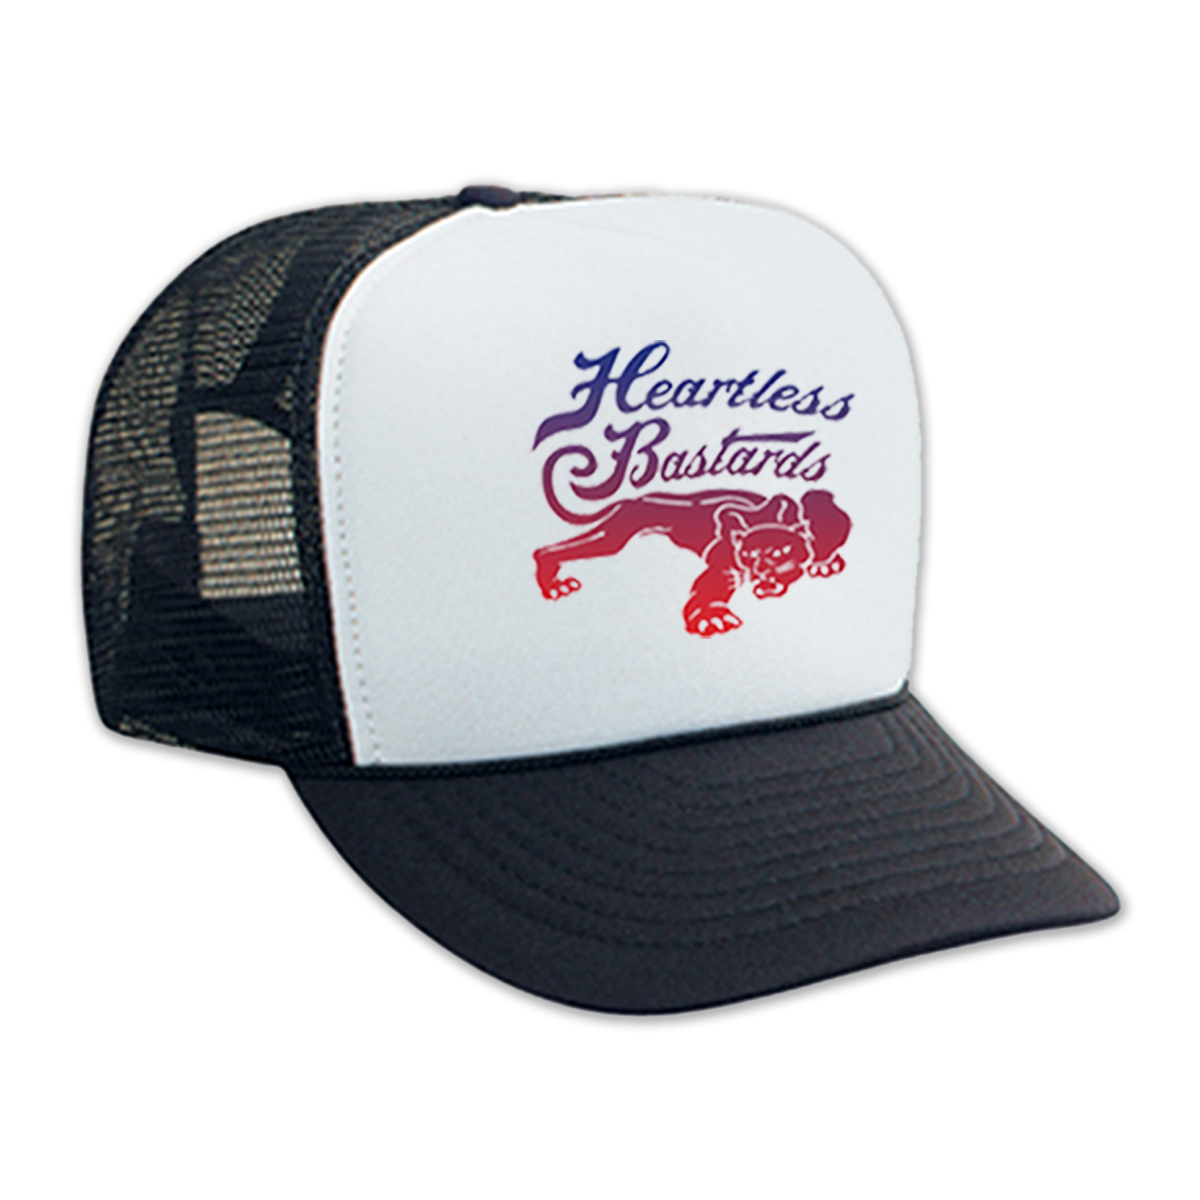 Heartless Bastards PANTHER trucker